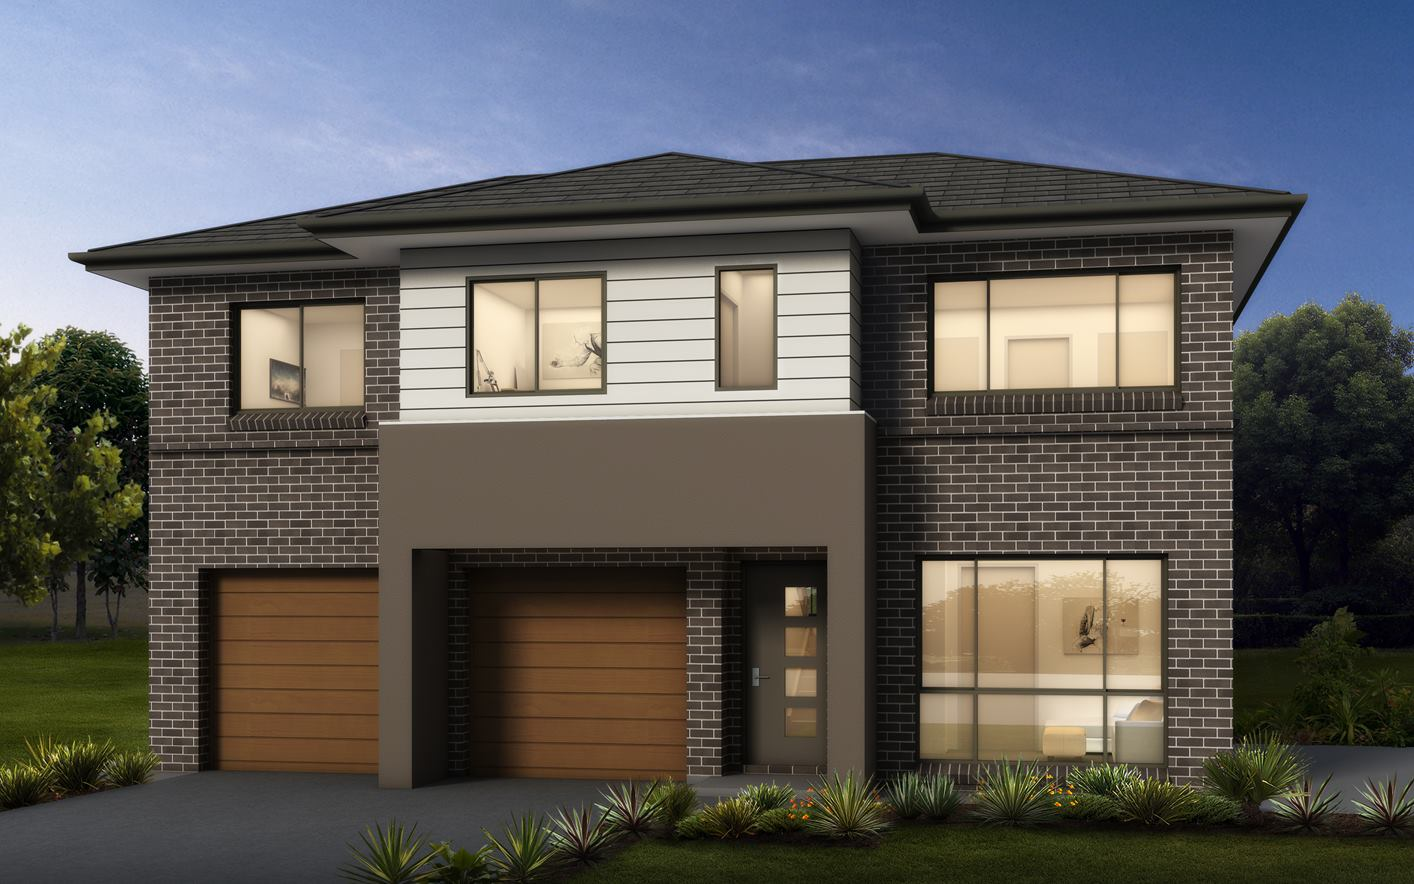 Medway Home Design with Classic Facade